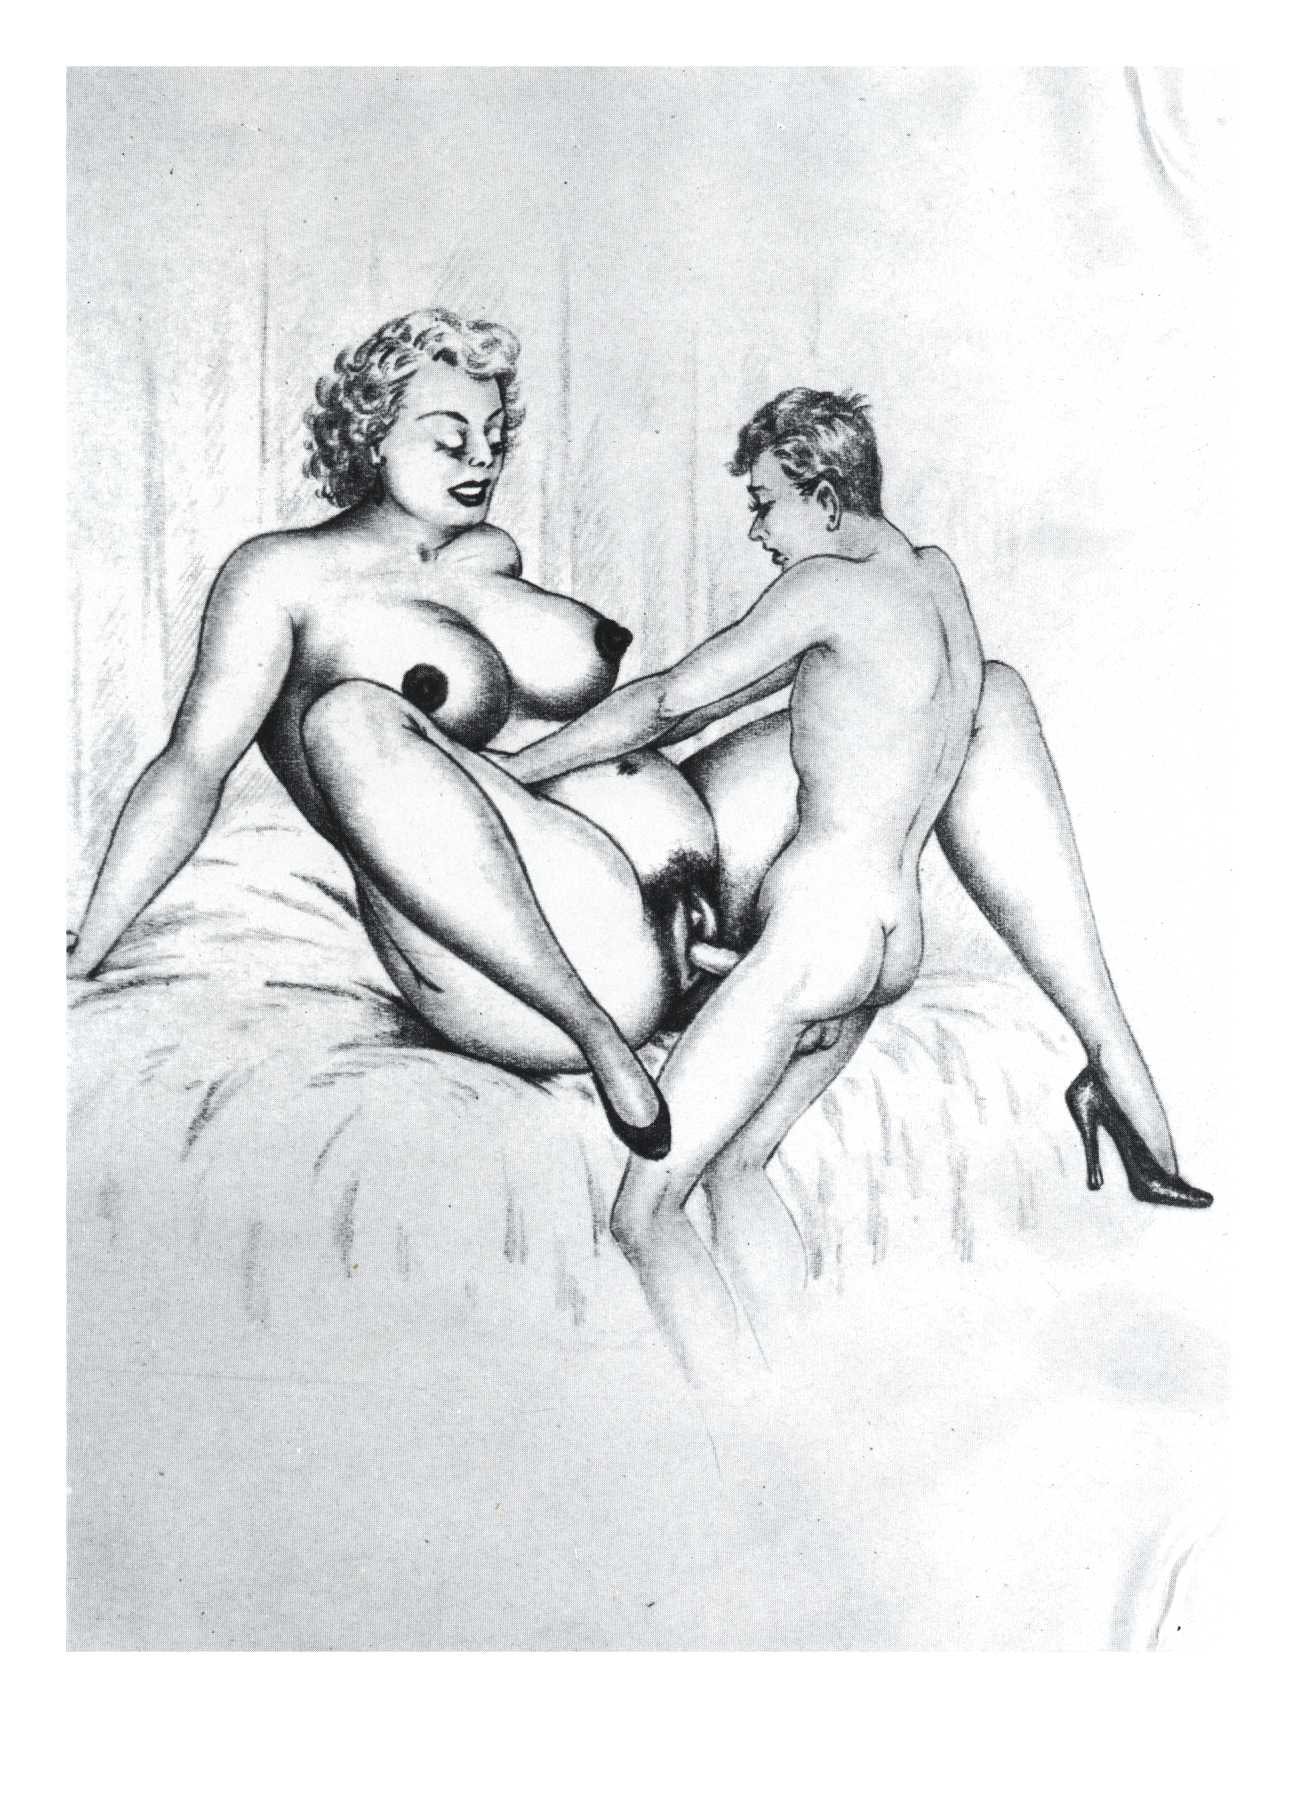 Bw porn drawings sketches smut galleries